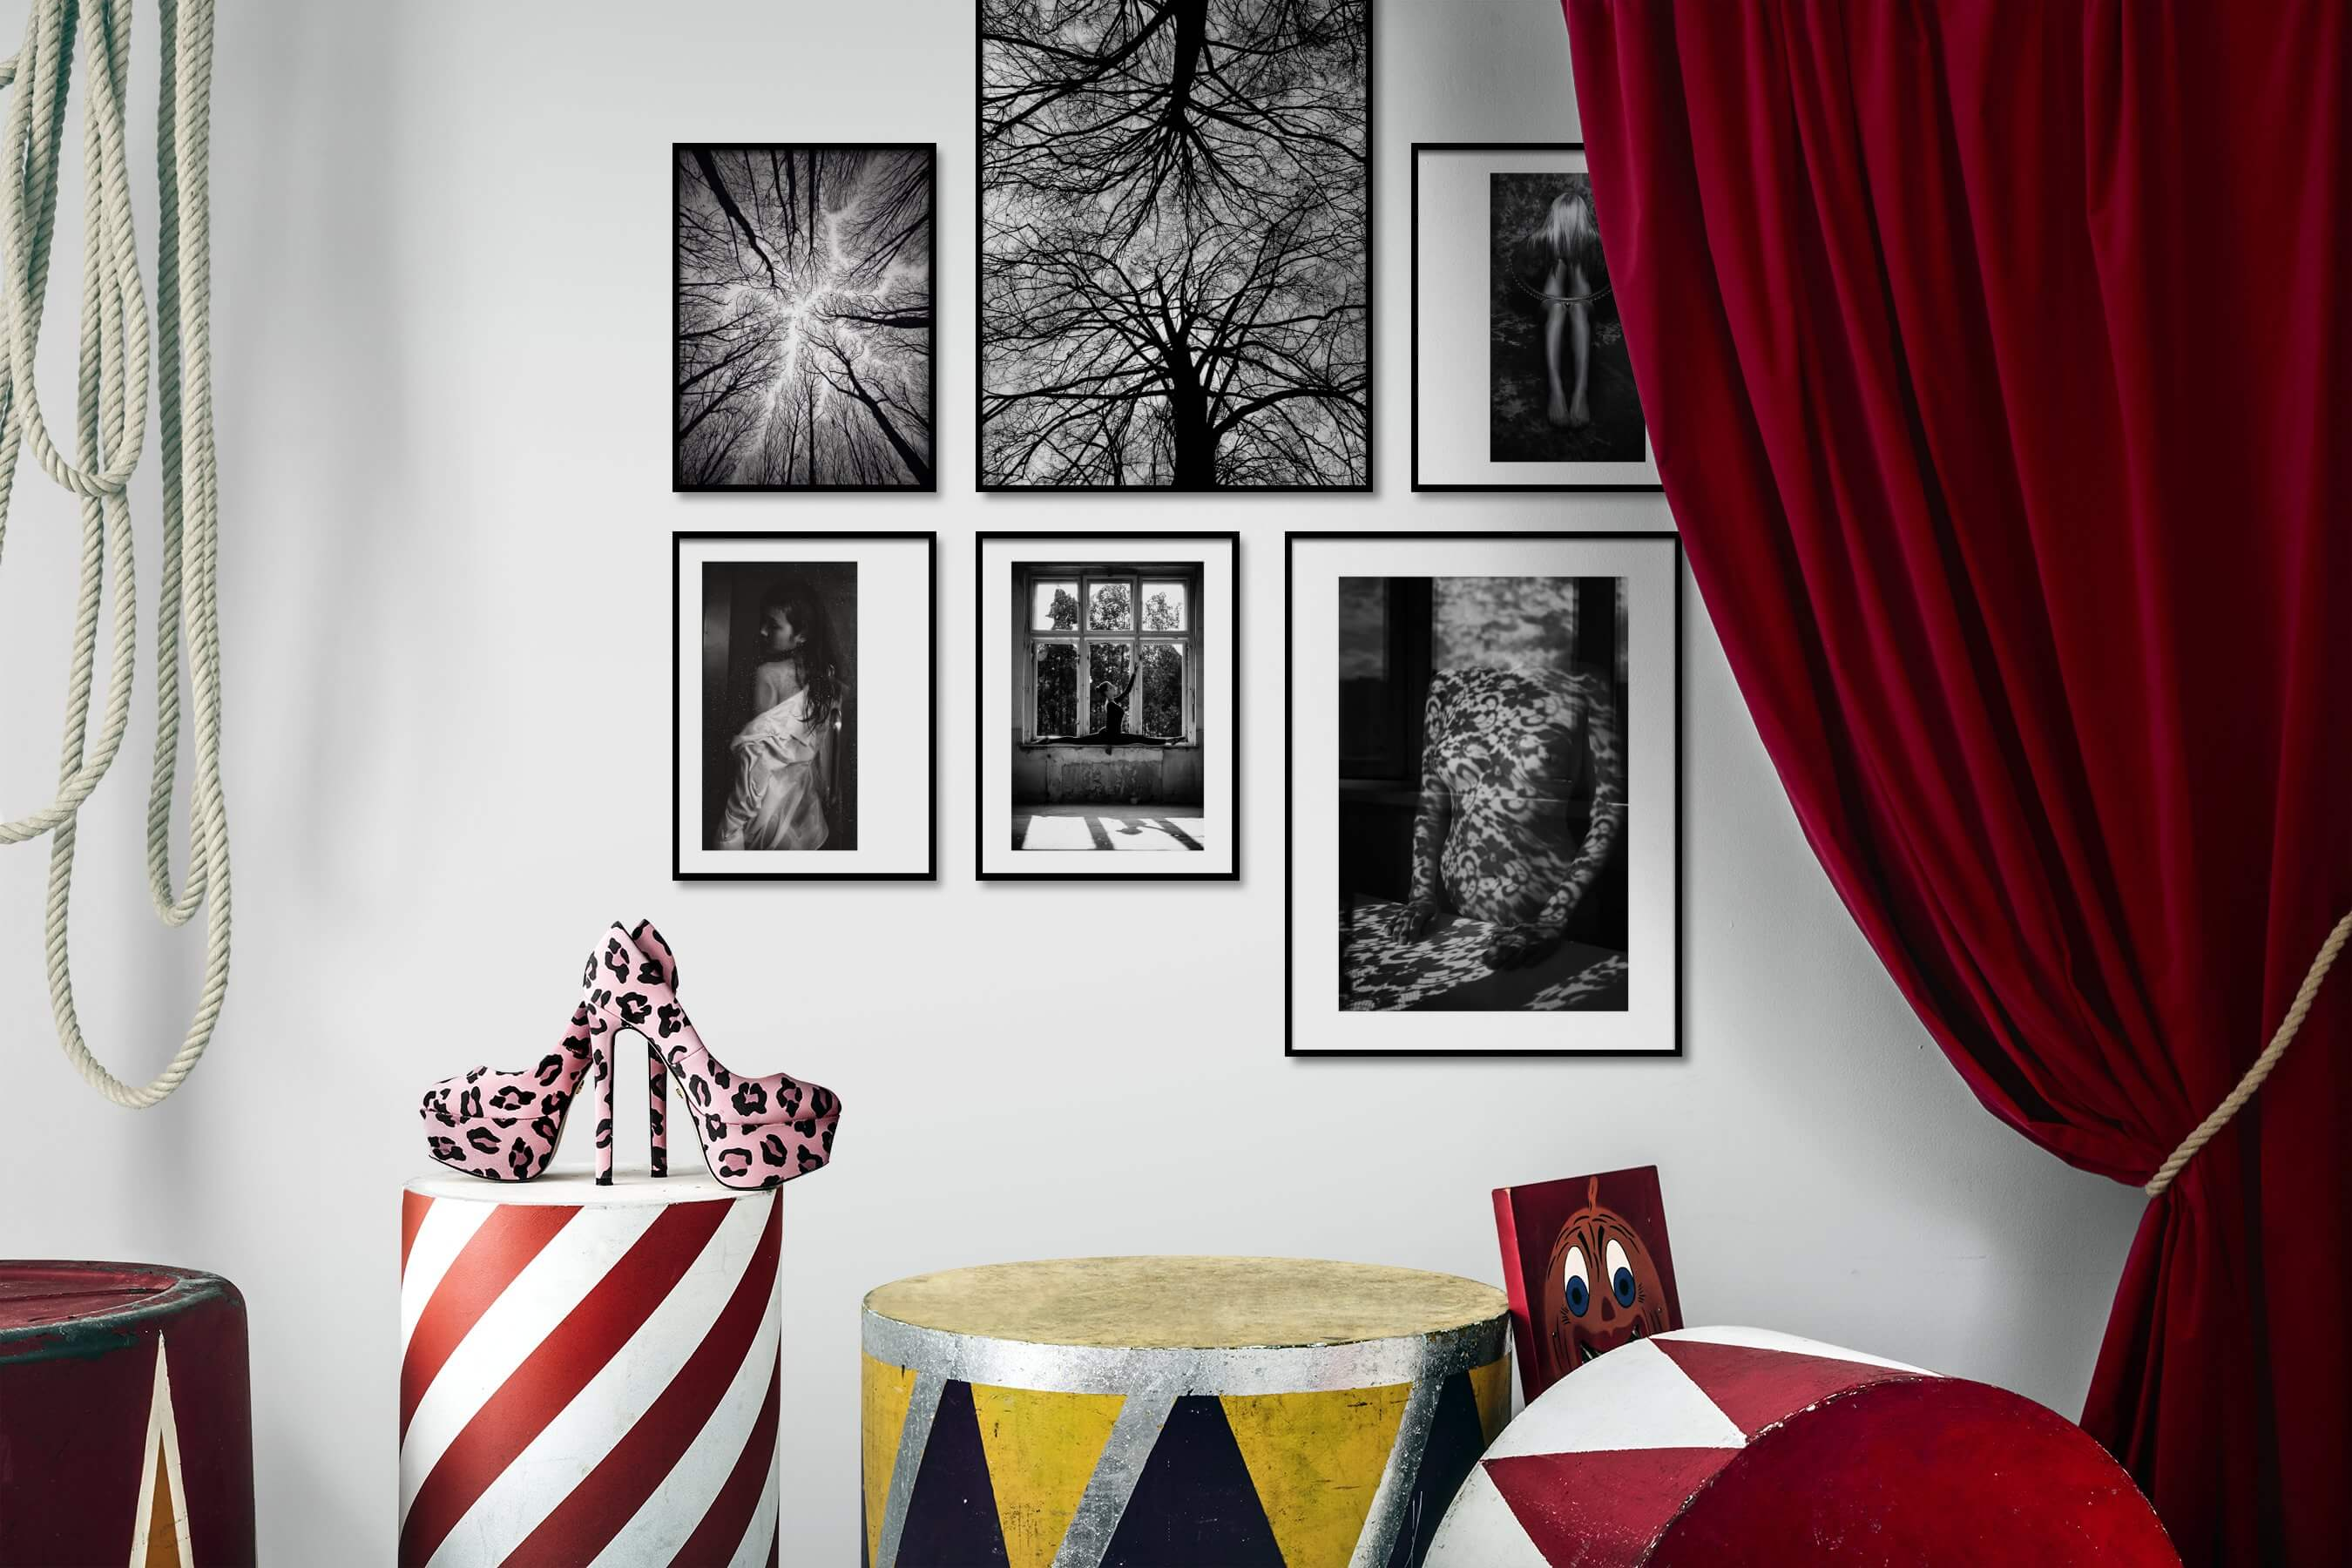 Gallery wall idea with six framed pictures arranged on a wall depicting Black & White, For the Moderate, Nature, For the Maximalist, Fashion & Beauty, Artsy, and Bold